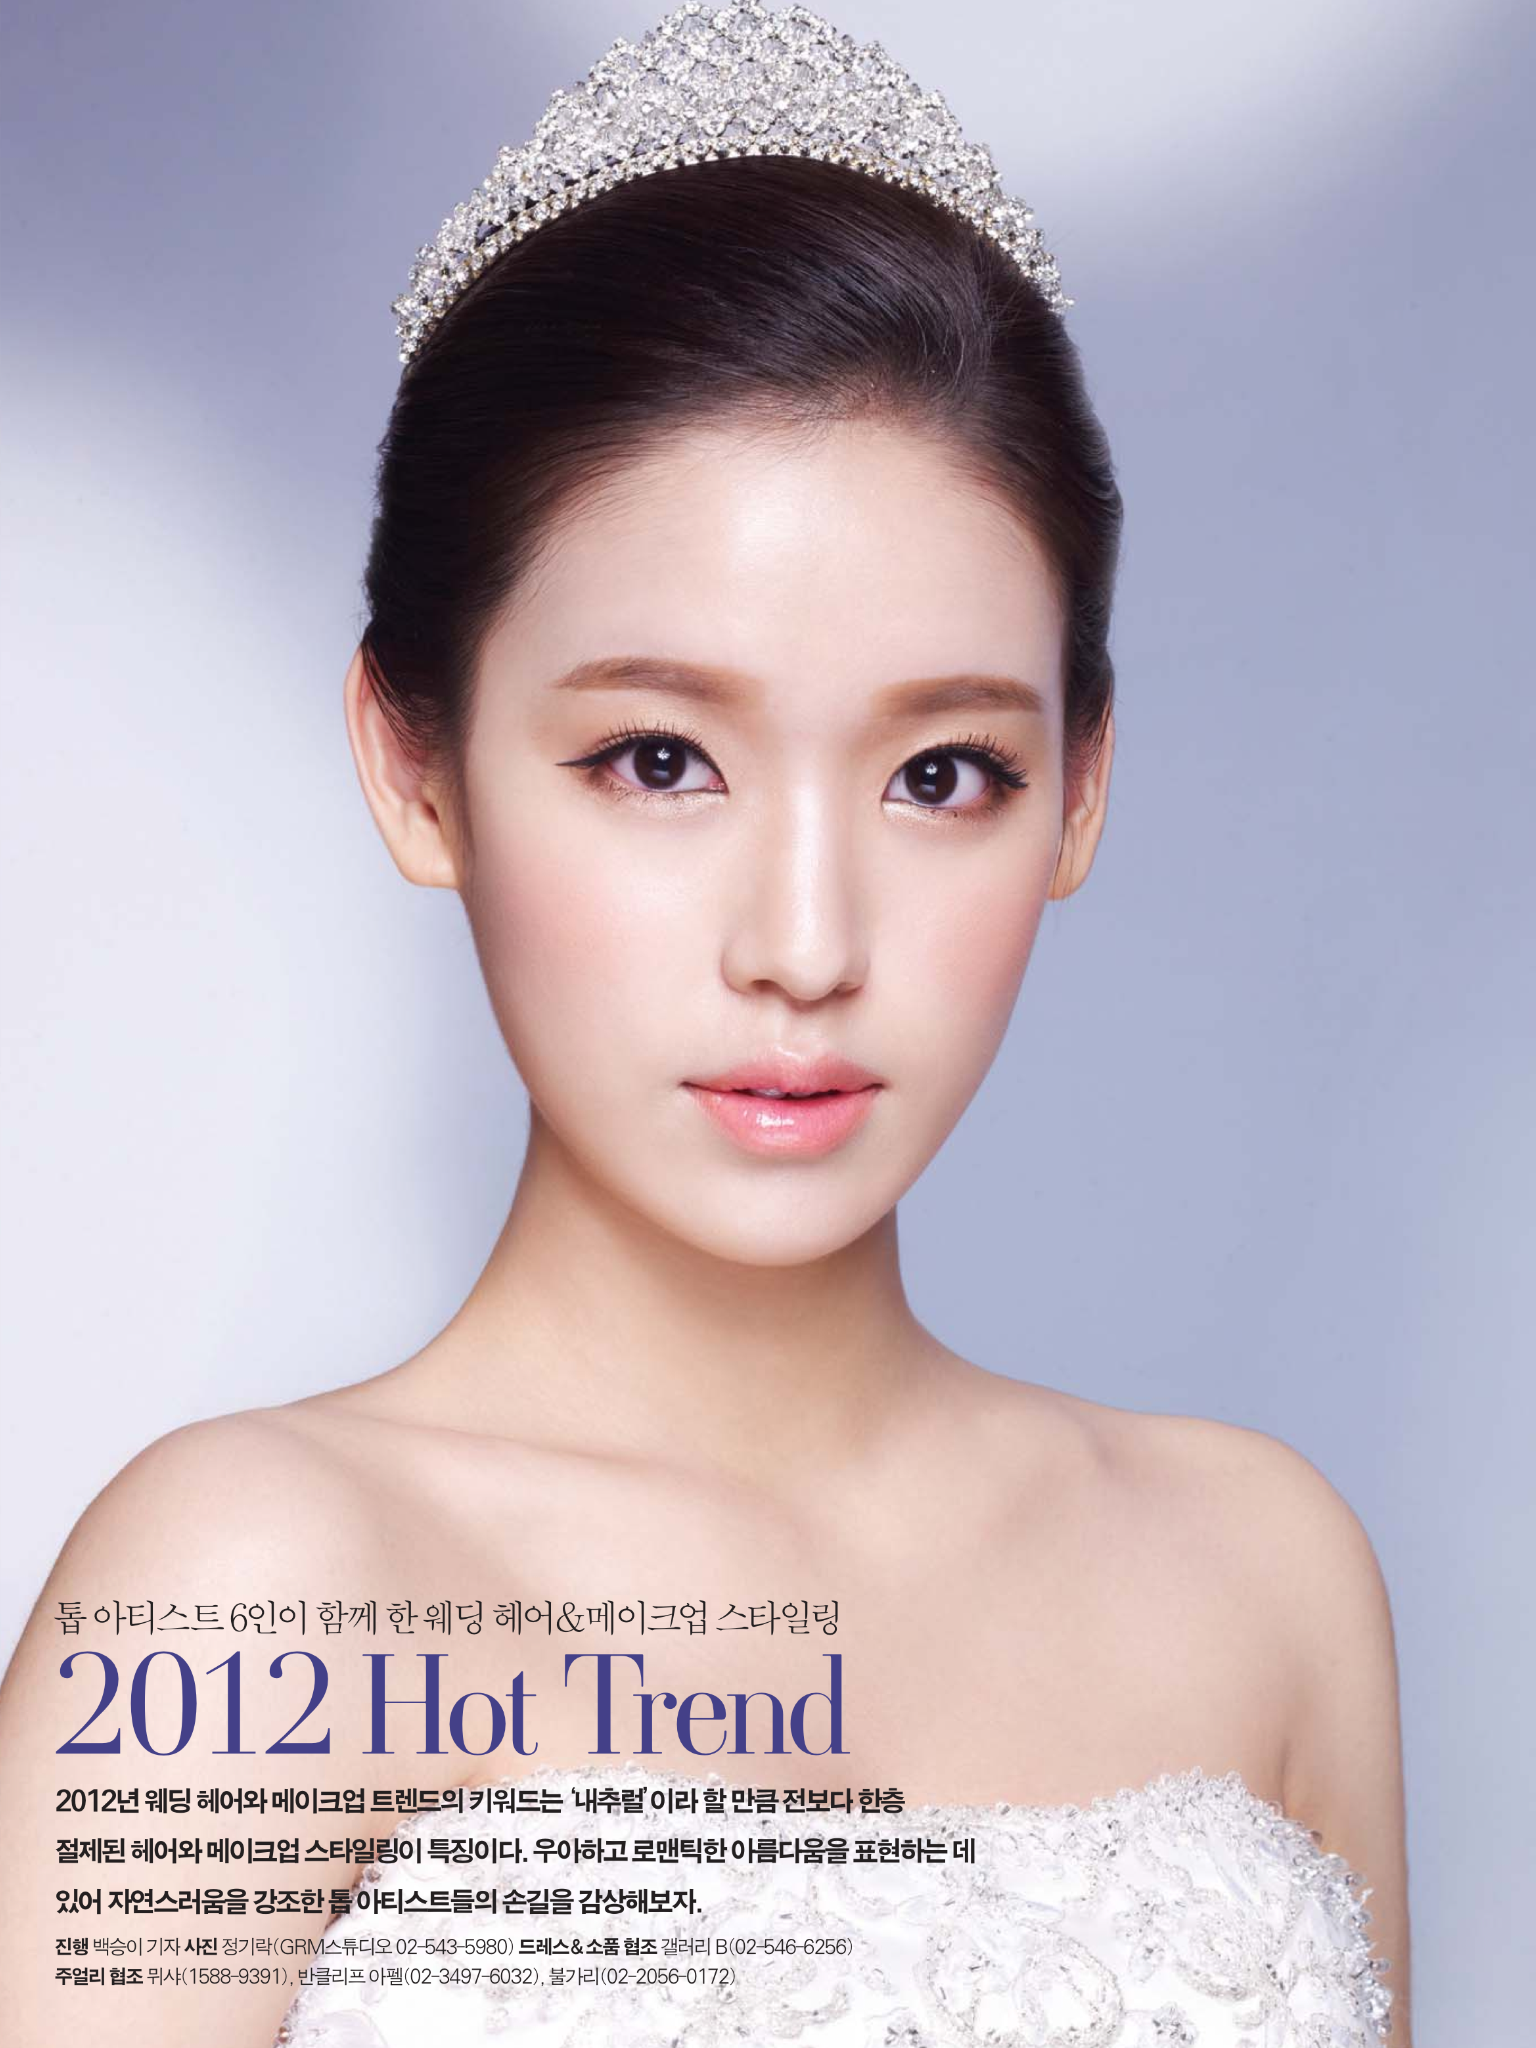 Clean & Graceful updo hair styling / Korean Concept